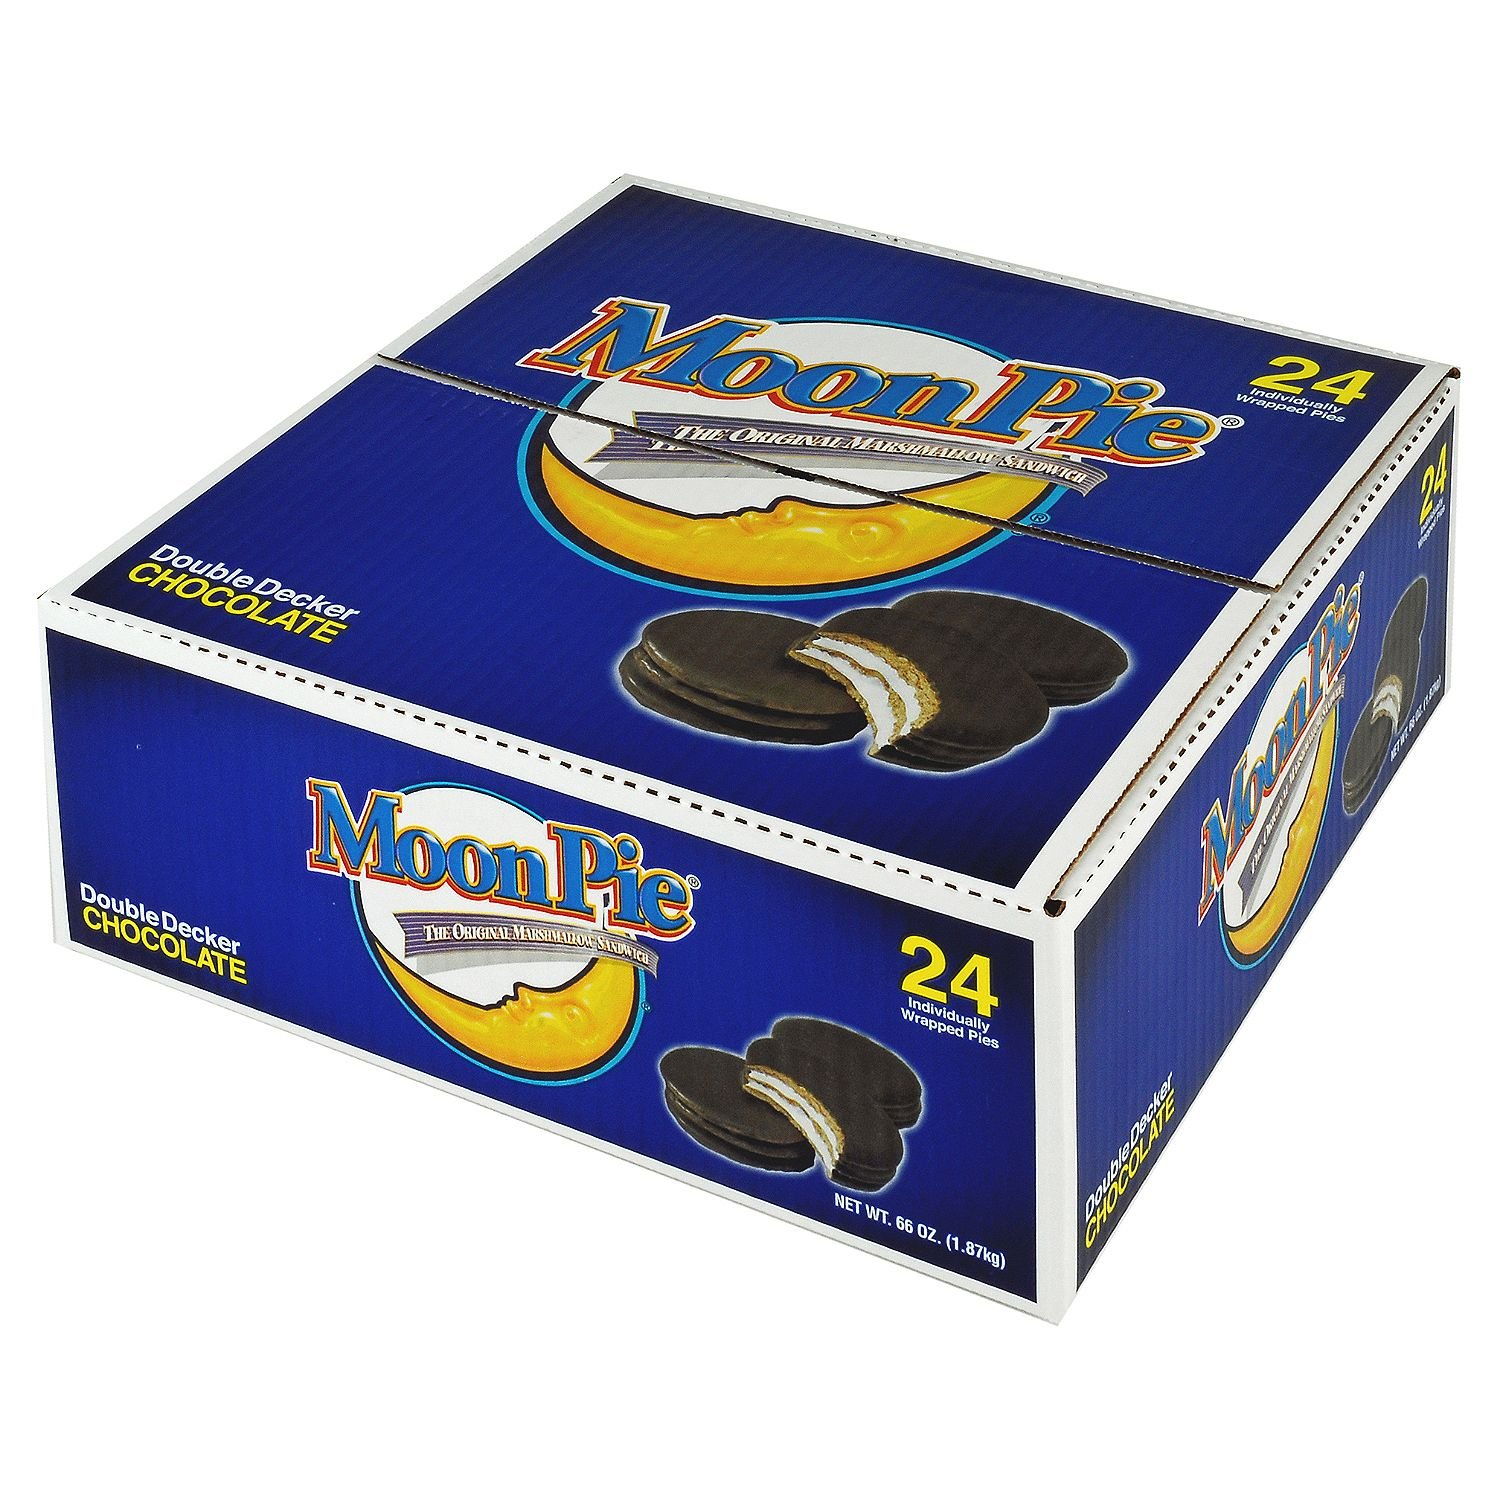 MoonPie Chocolate Double Decker MoonPies - 6 ct. of pack Max 66% OFF All items free shipping 24